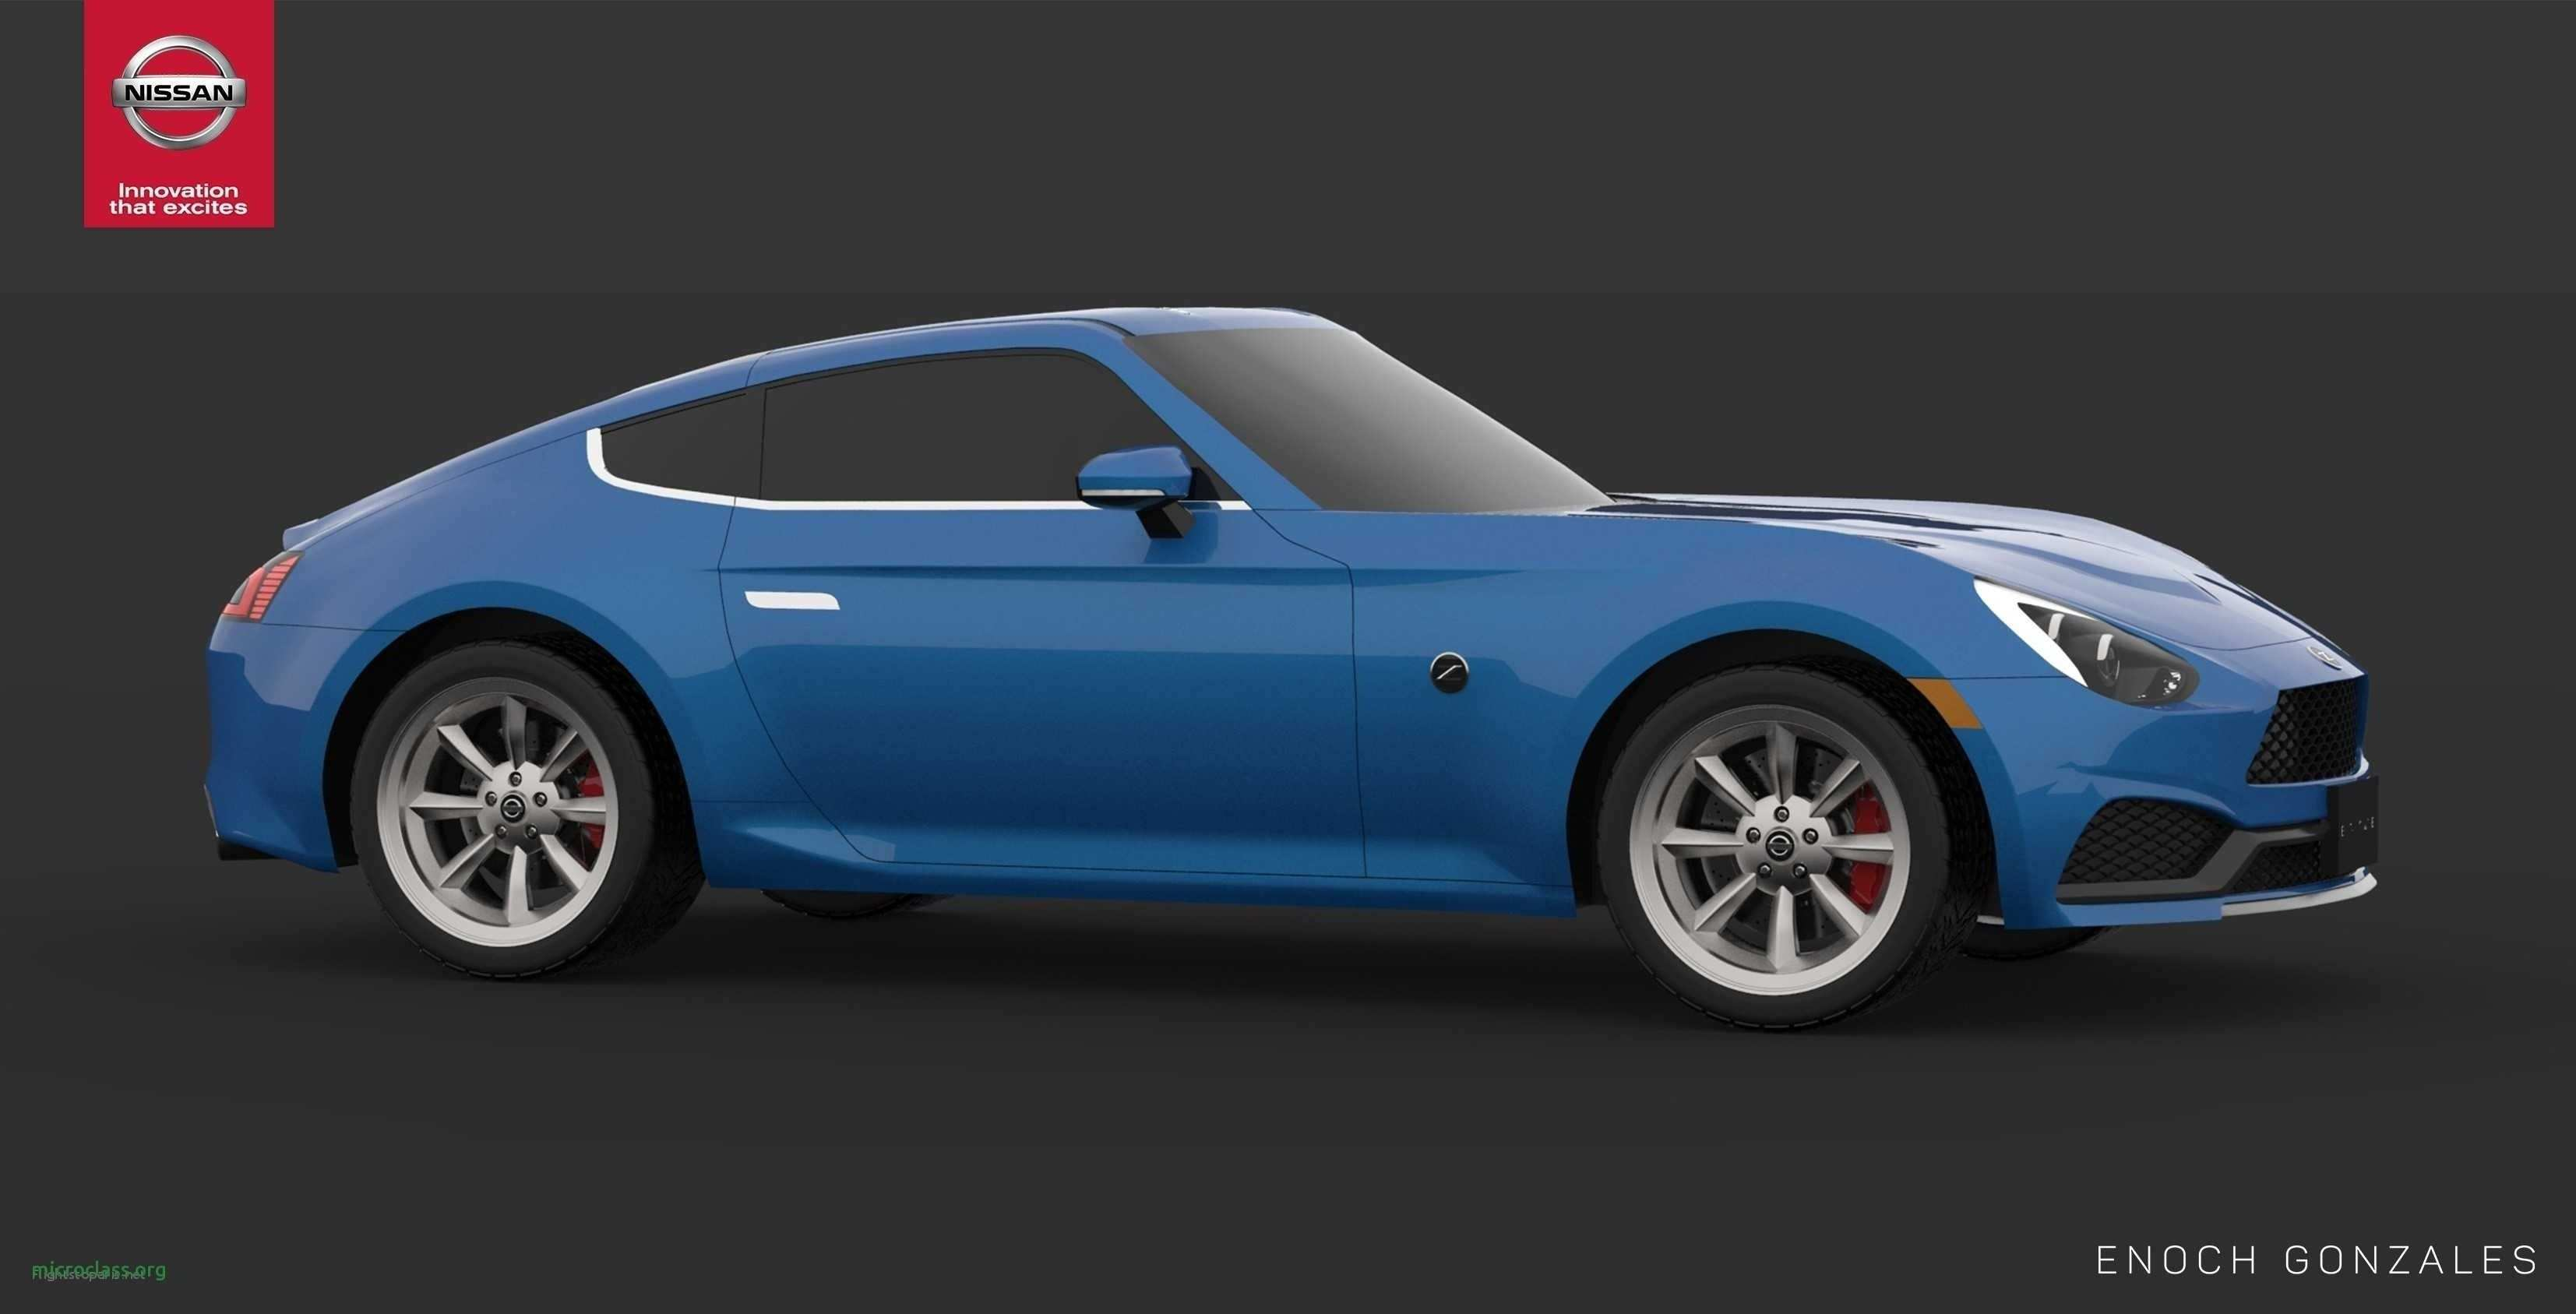 93 Best 2019 Nissan Z35 Review Pictures